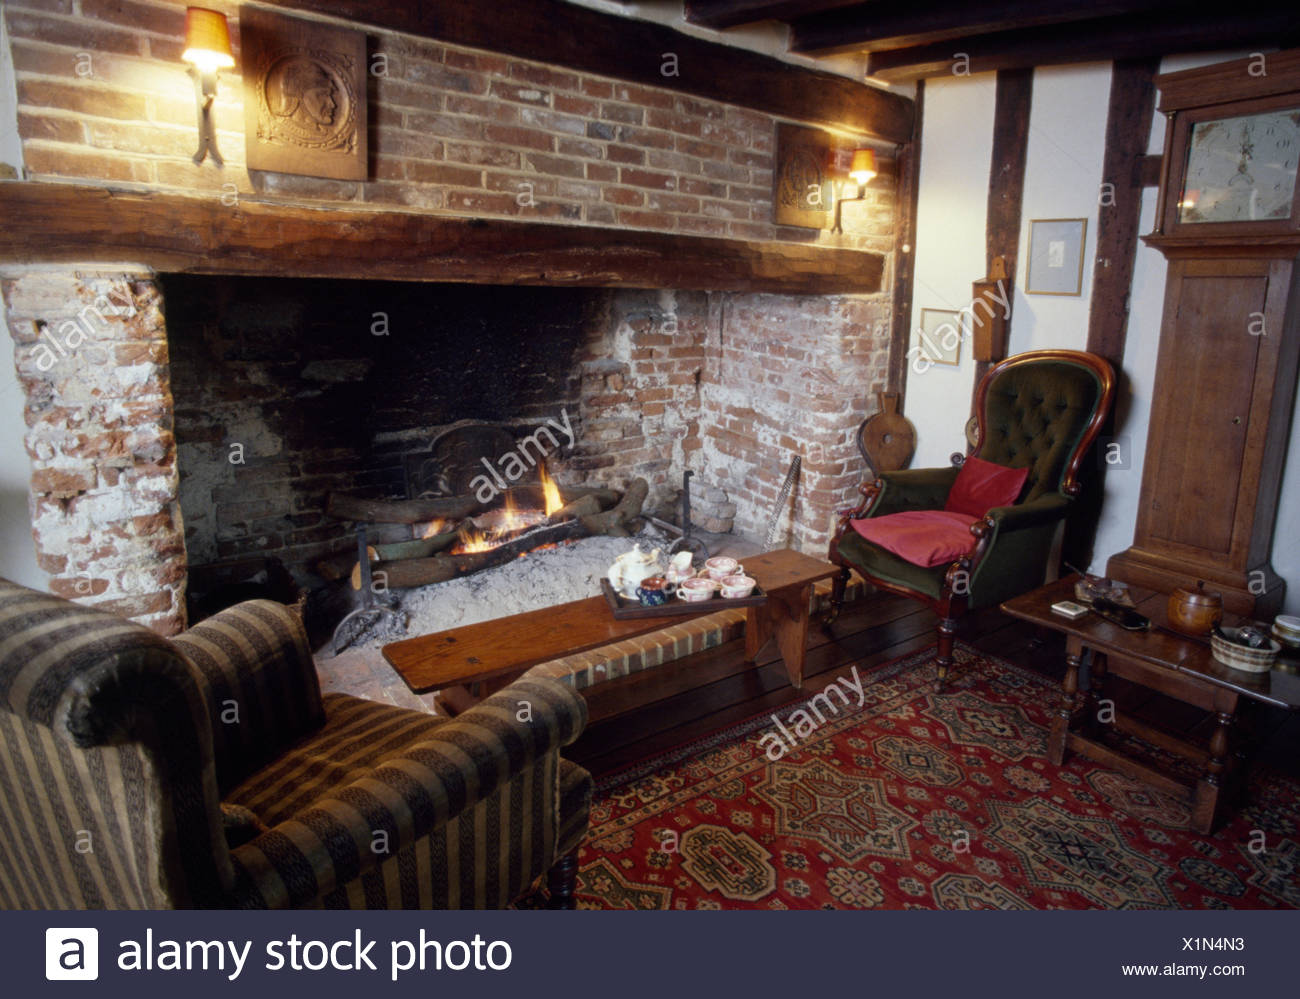 Inglenook Fireplace Stock Photos Inglenook Fireplace